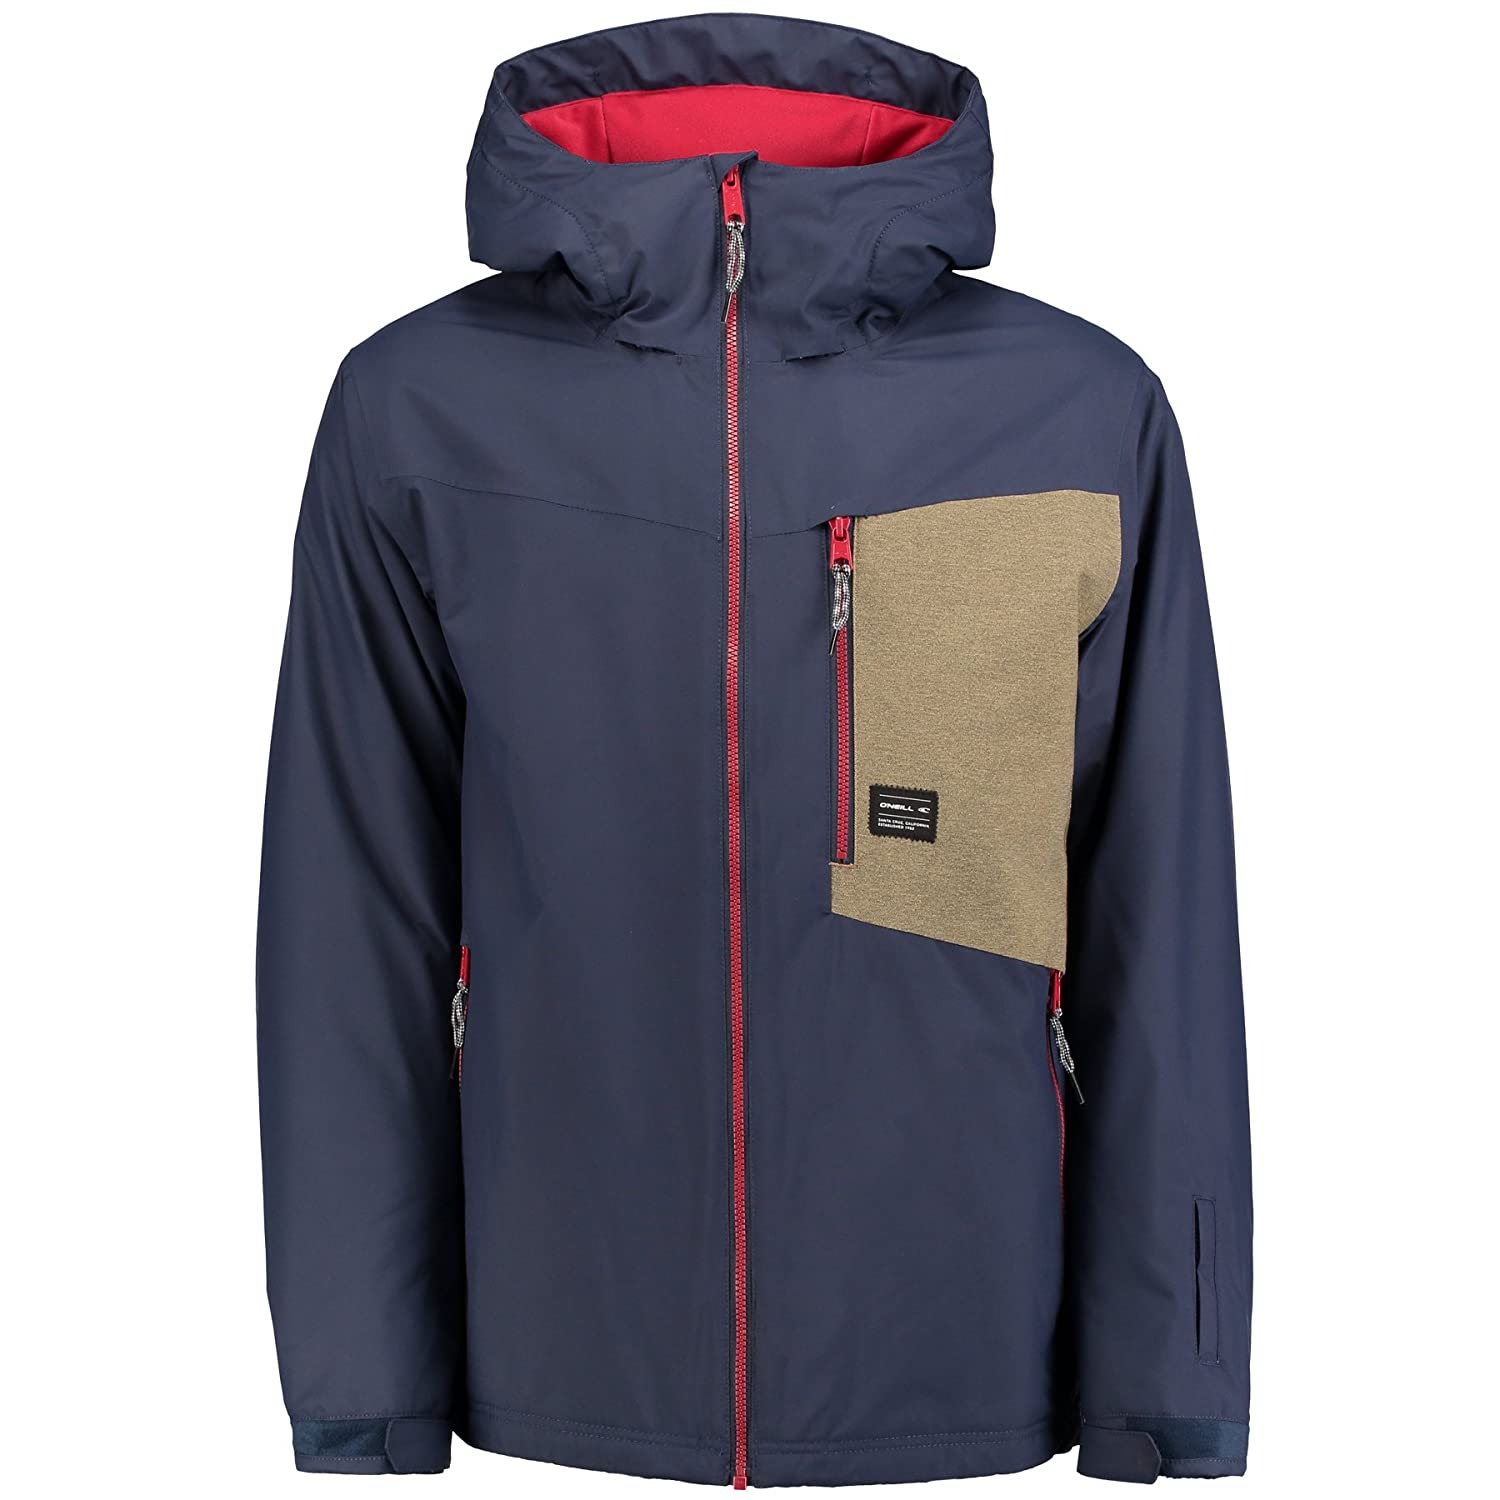 ONeill Cue Jacket